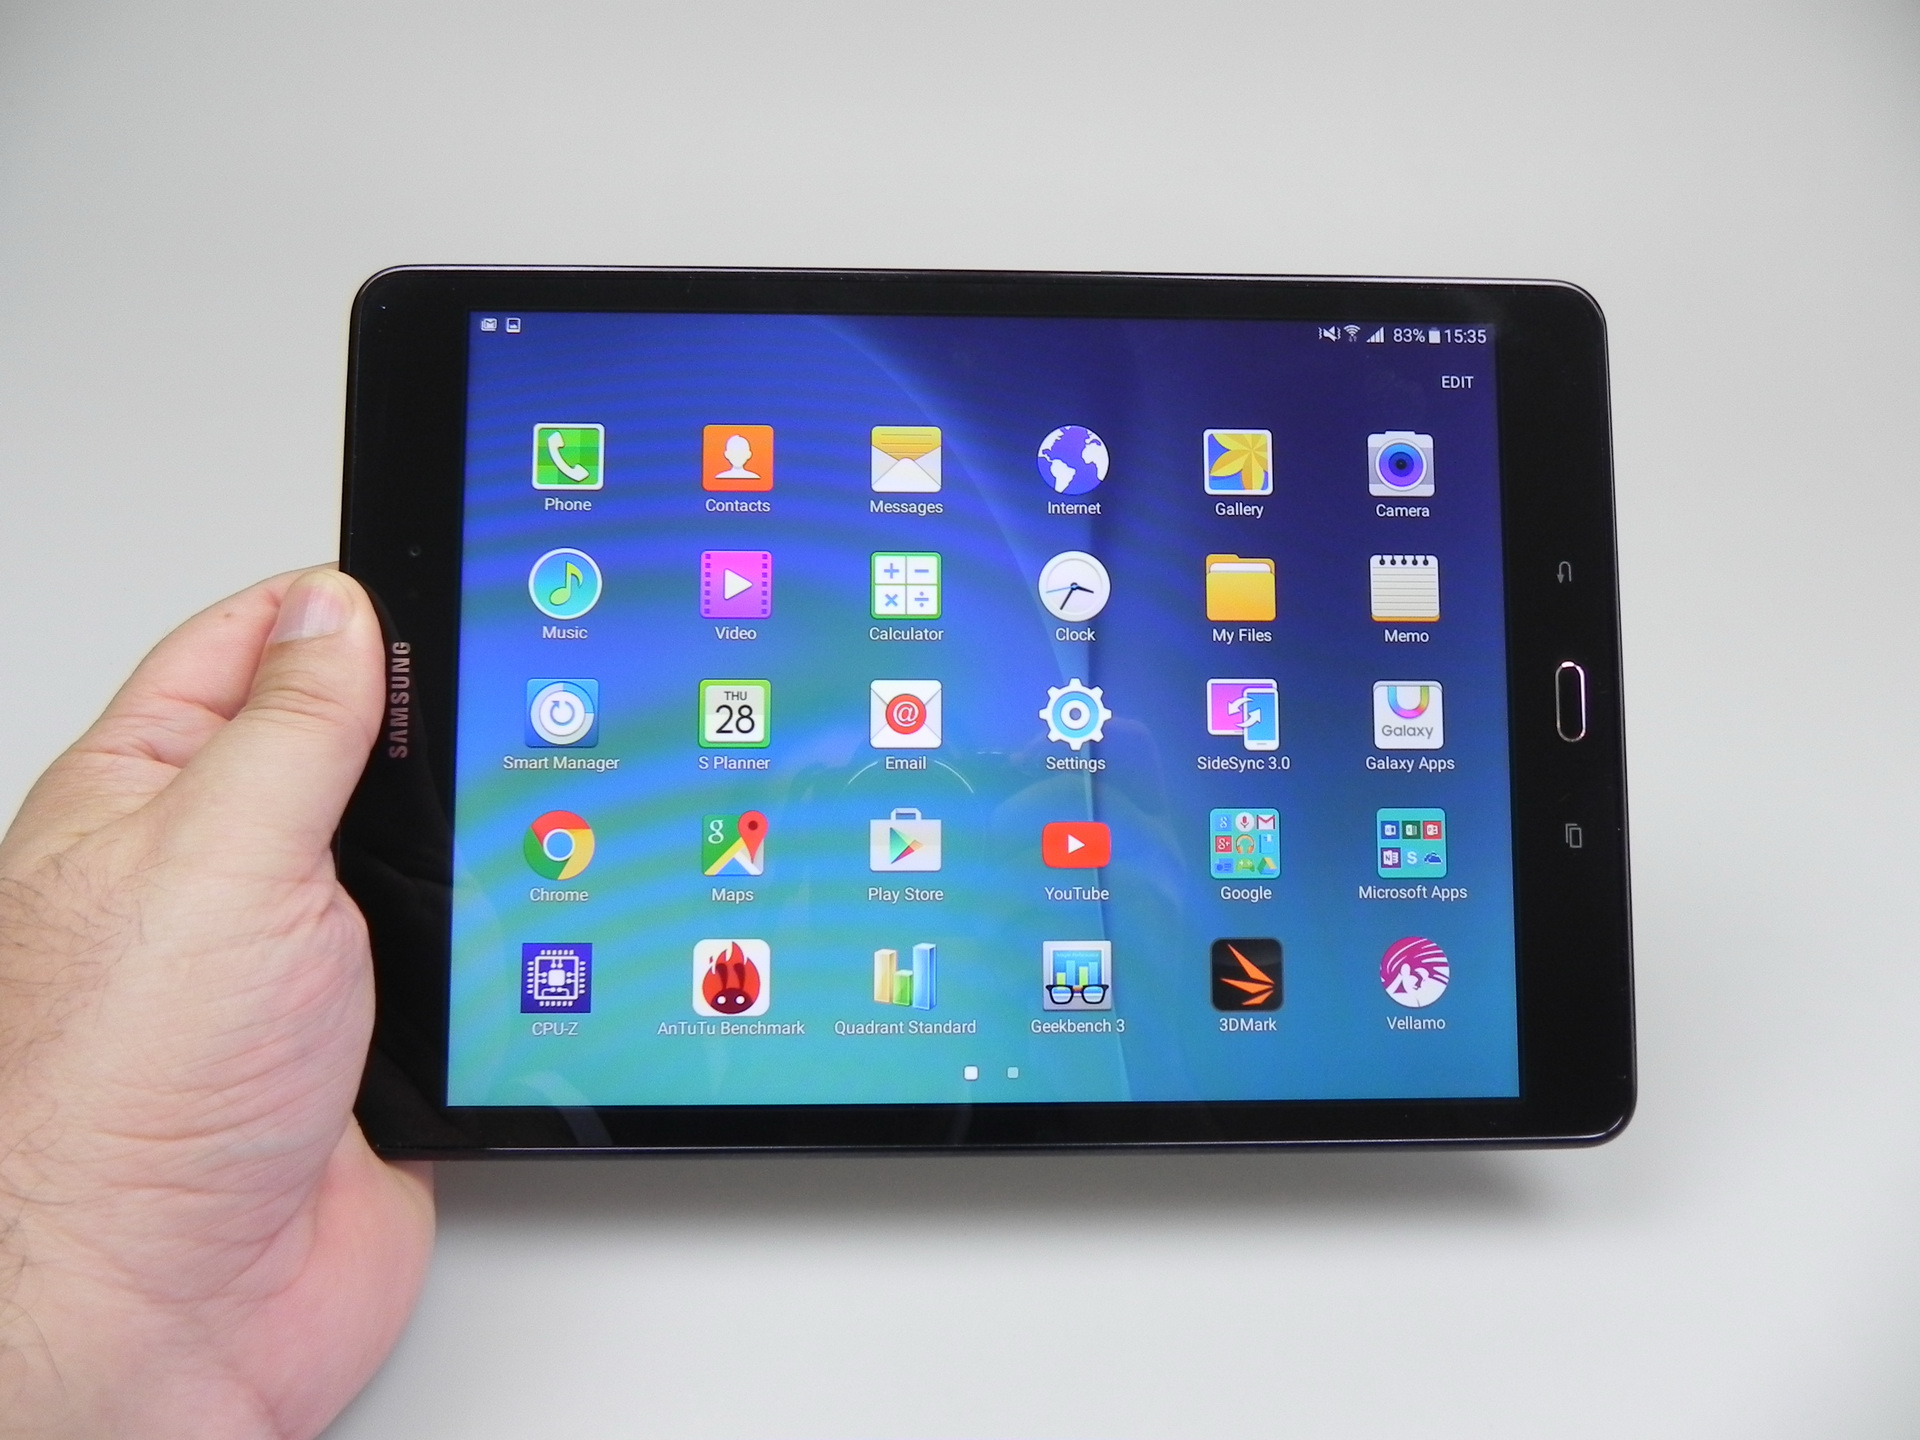 Galaxy Tab 9.7 Samsung Galaxy Tab A 9 7 Review Solid Midrange Tablet With Lte